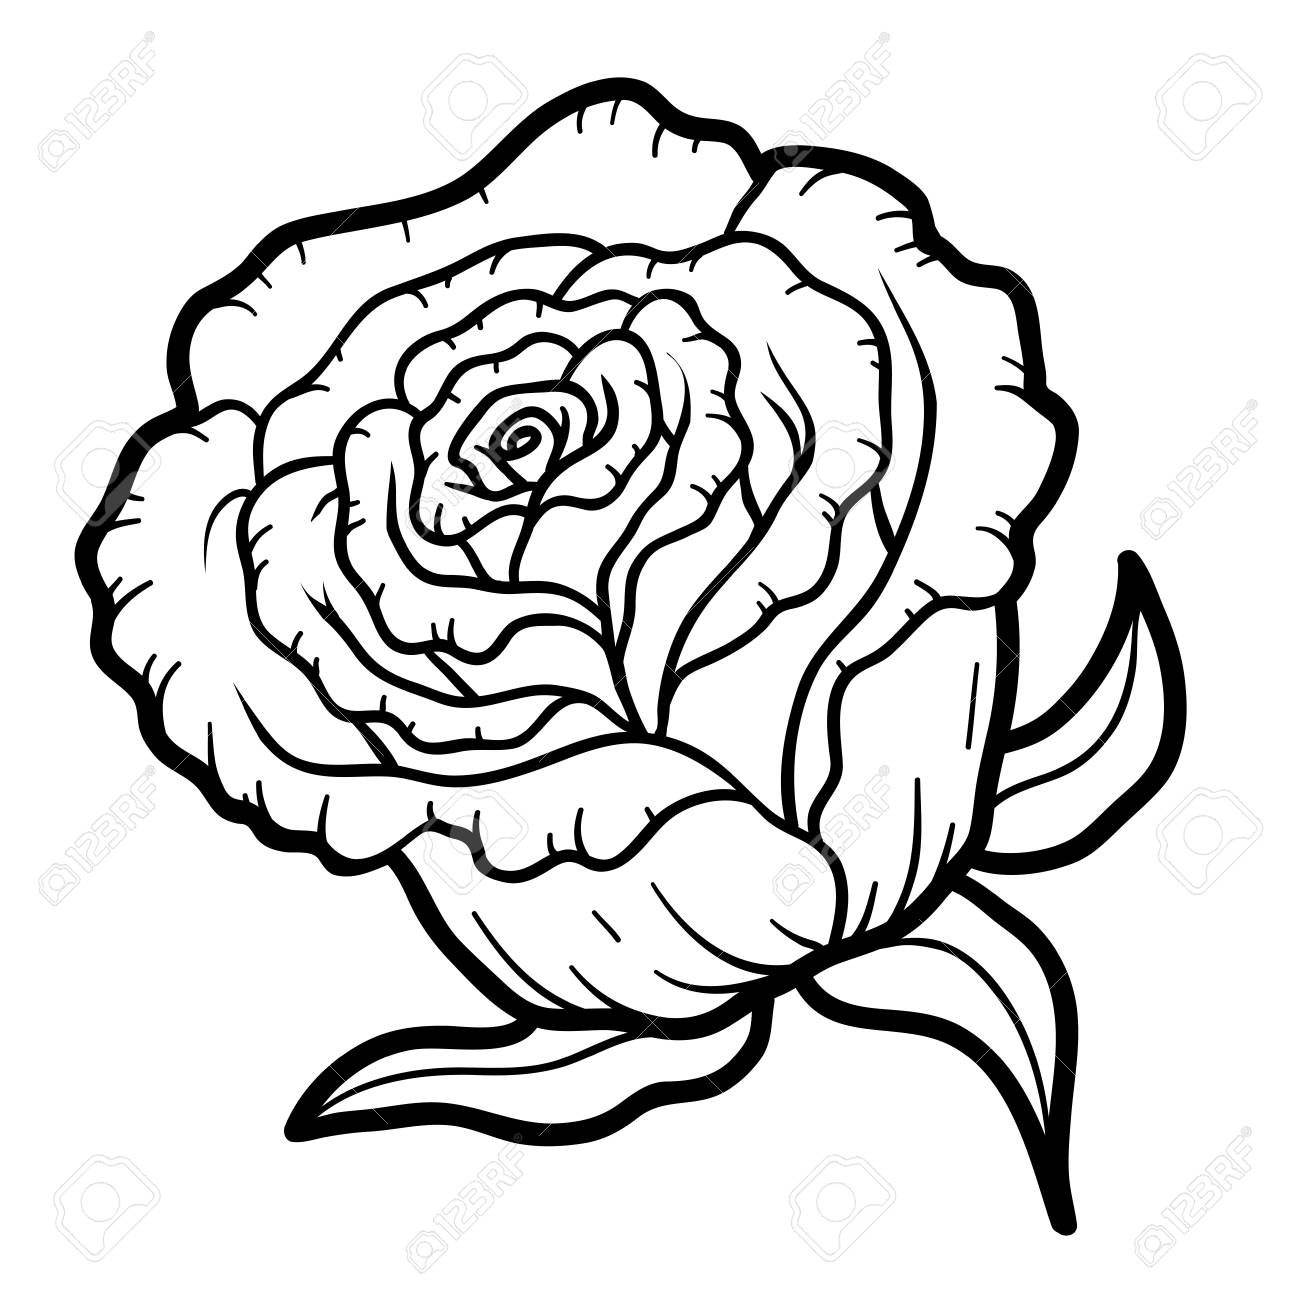 Coloring Book For Children, Flower Rose Royalty Free Cliparts ...